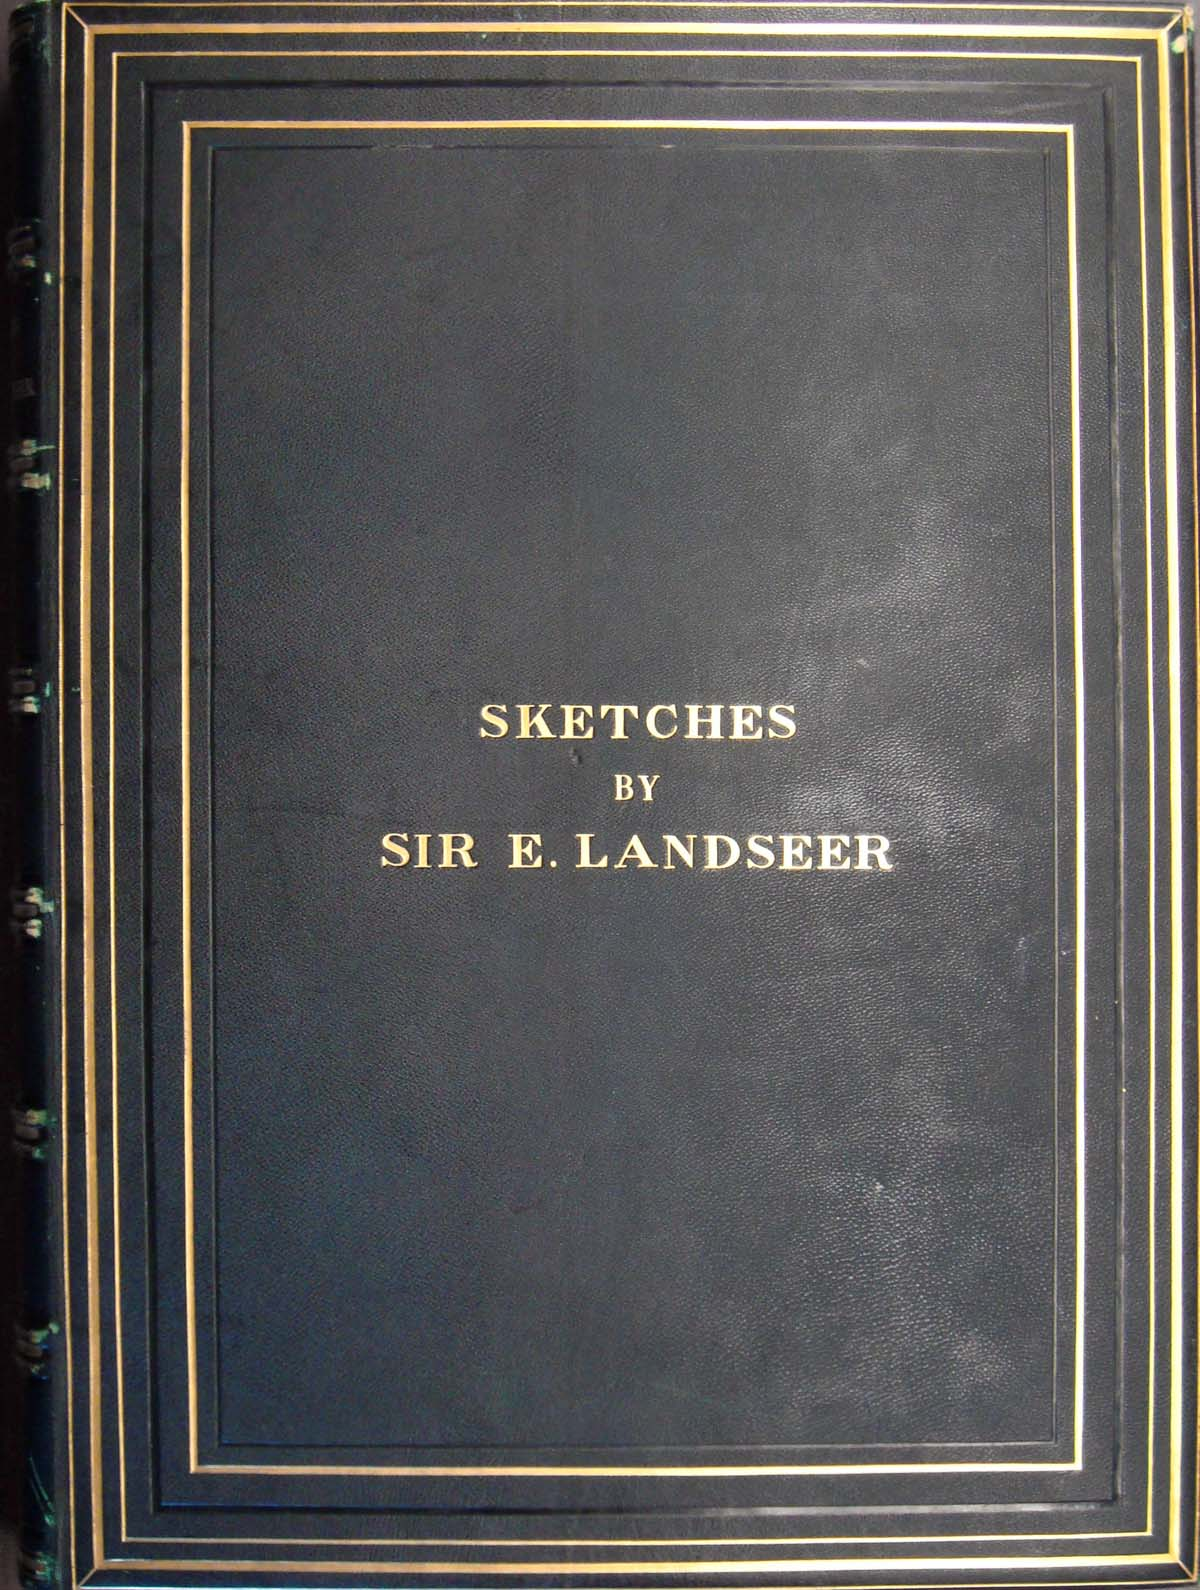 dark leather bound book cover with gold embossed lettering spelling Sketches of Sir E Landseer